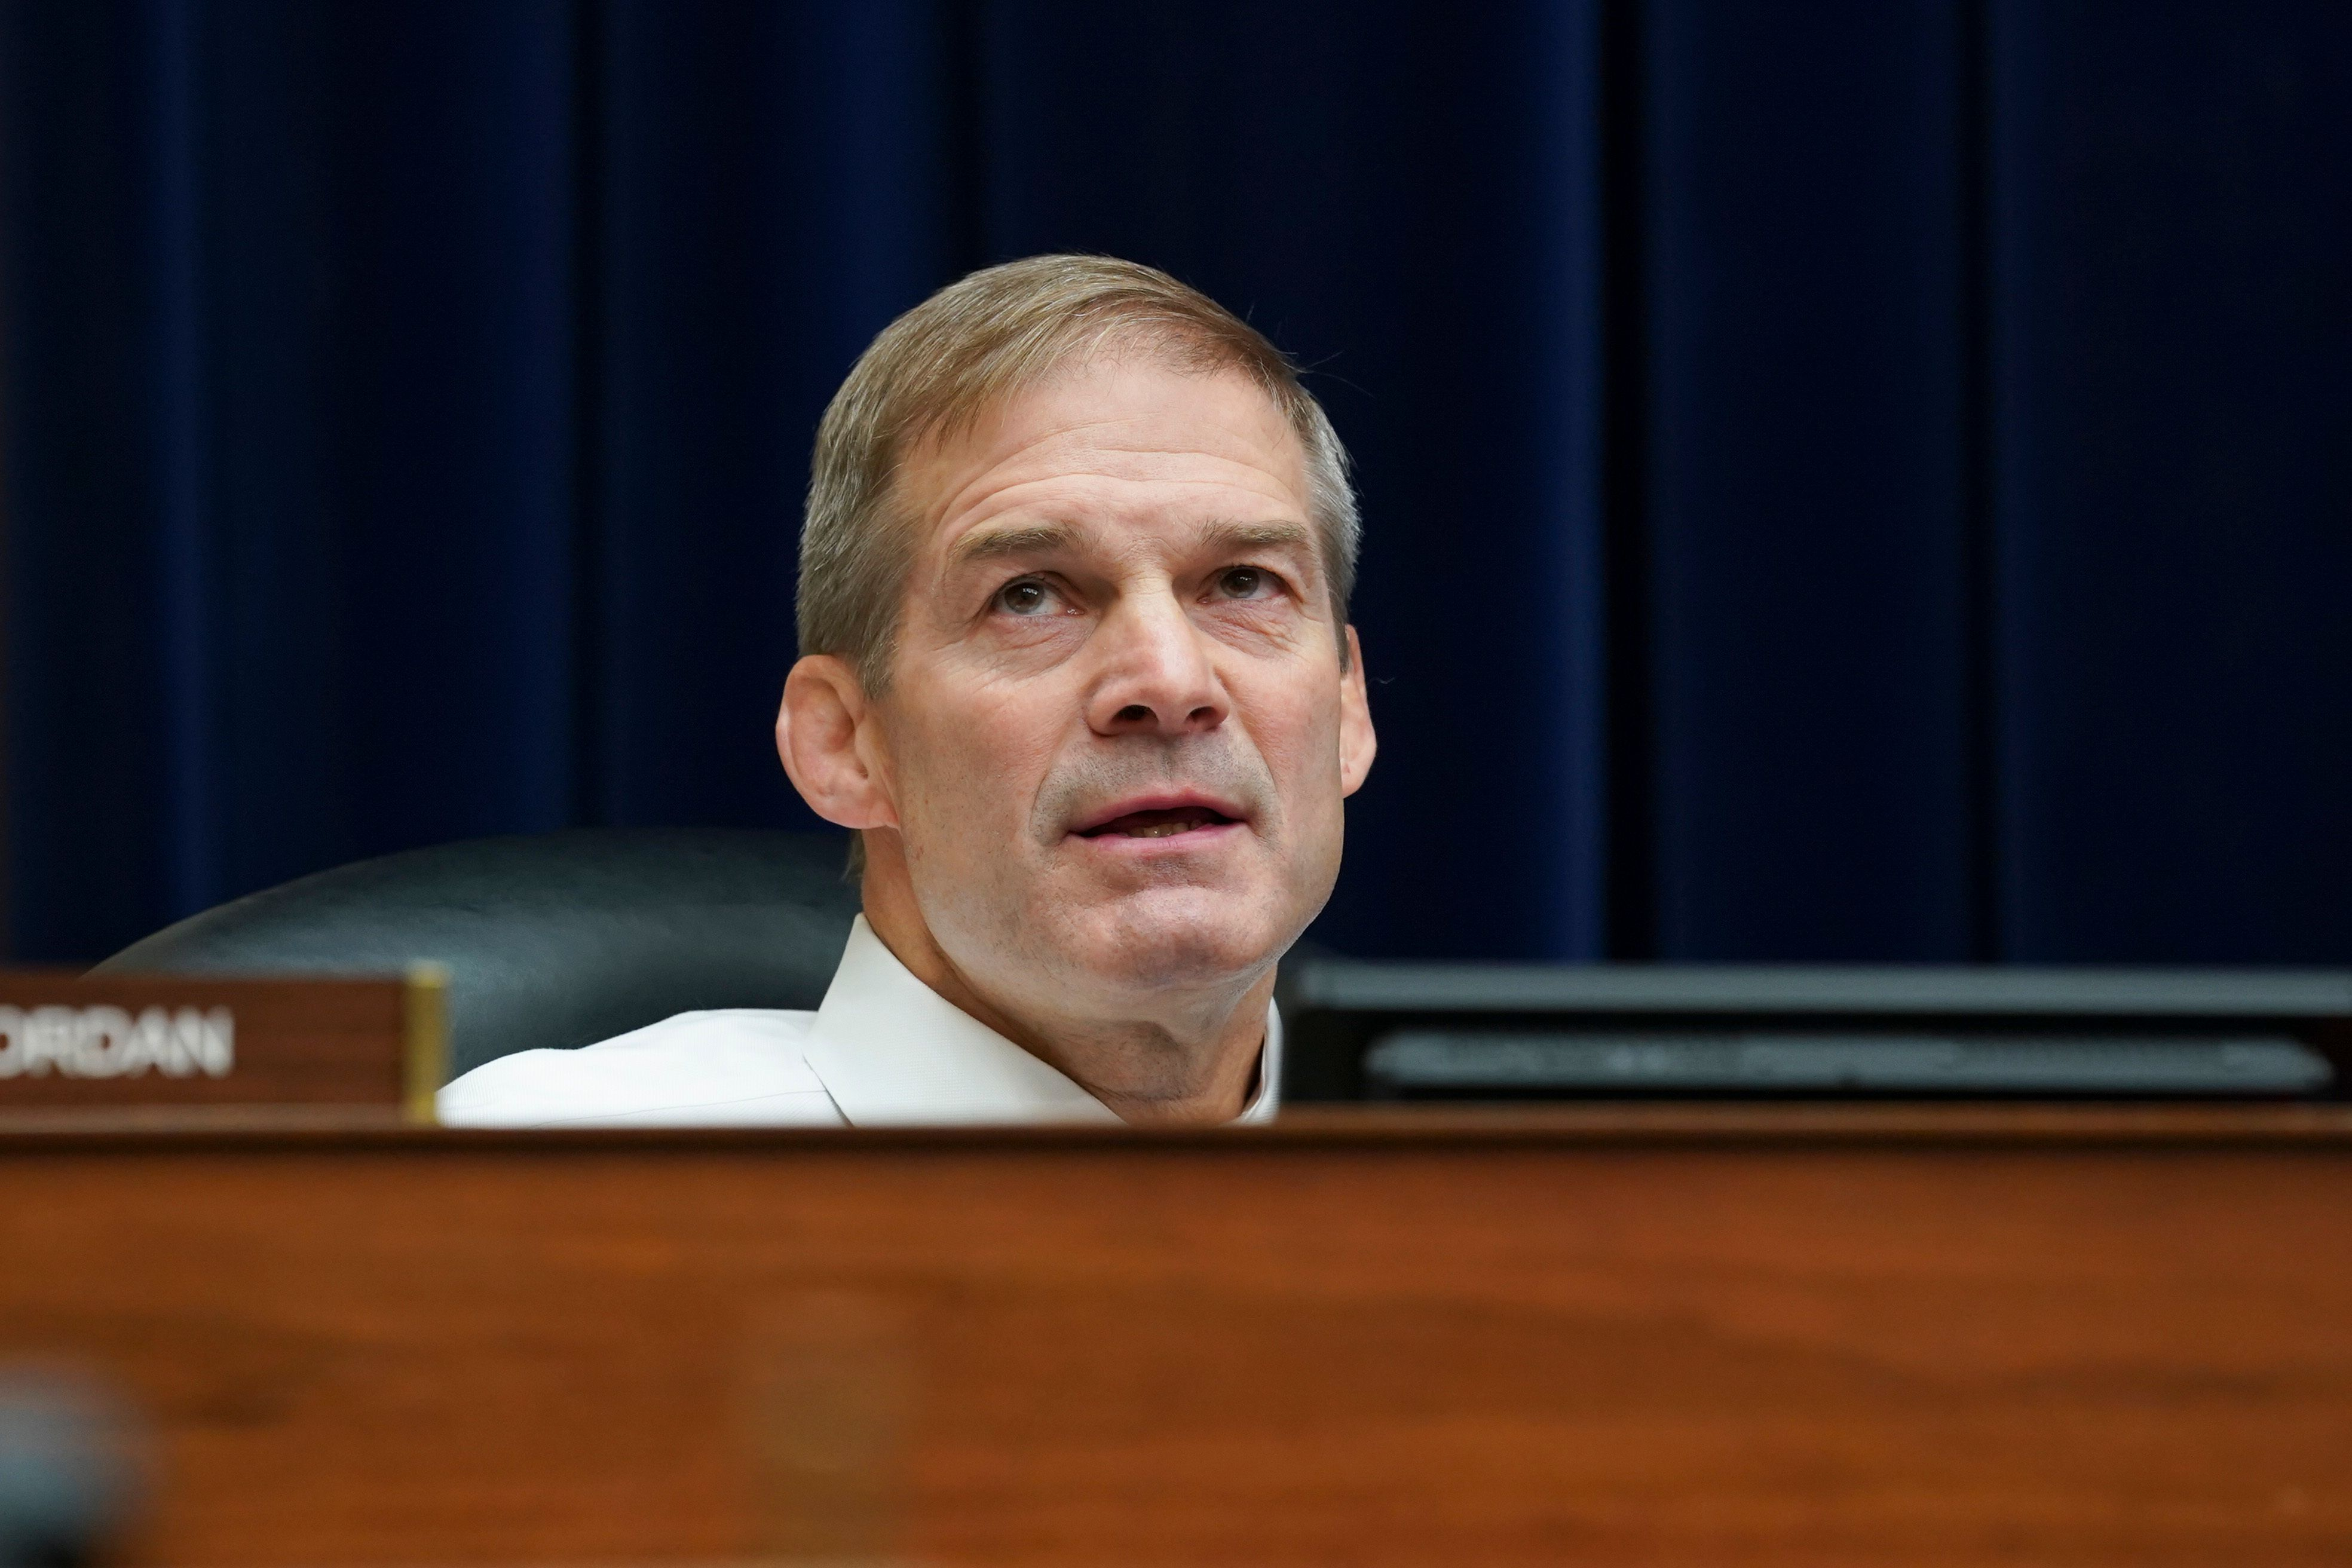 Rep. Jim Jordan's 'Trump Is The Leader' Of The GOP Tweet Goes Awry